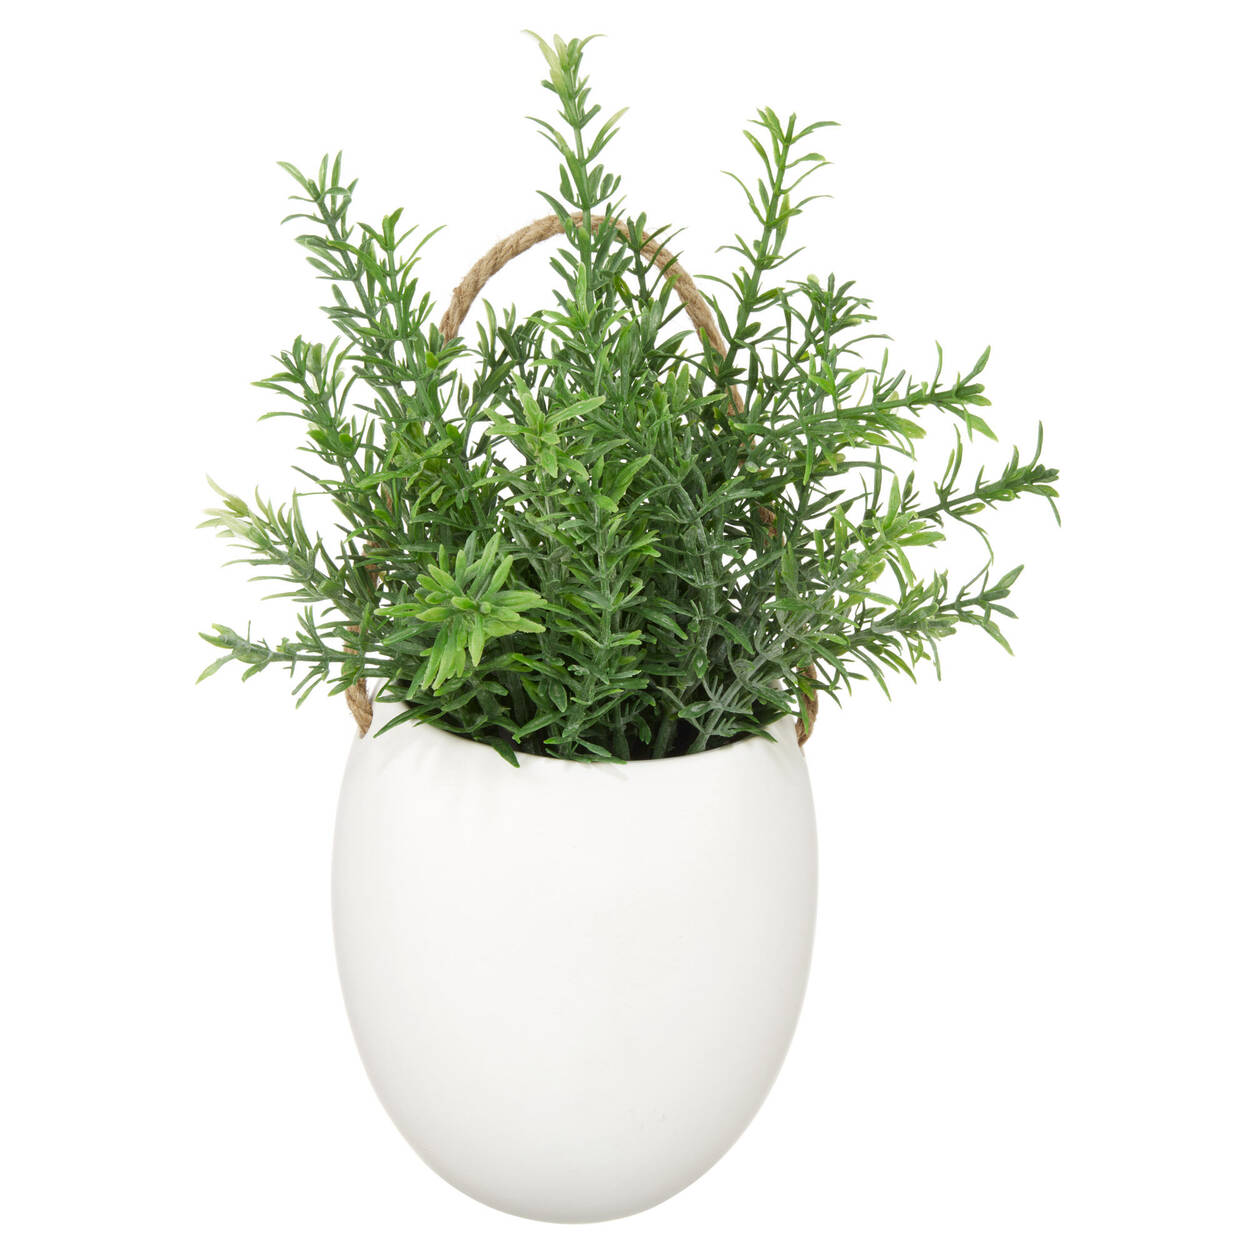 Wall Greenery with Ceramic Pot